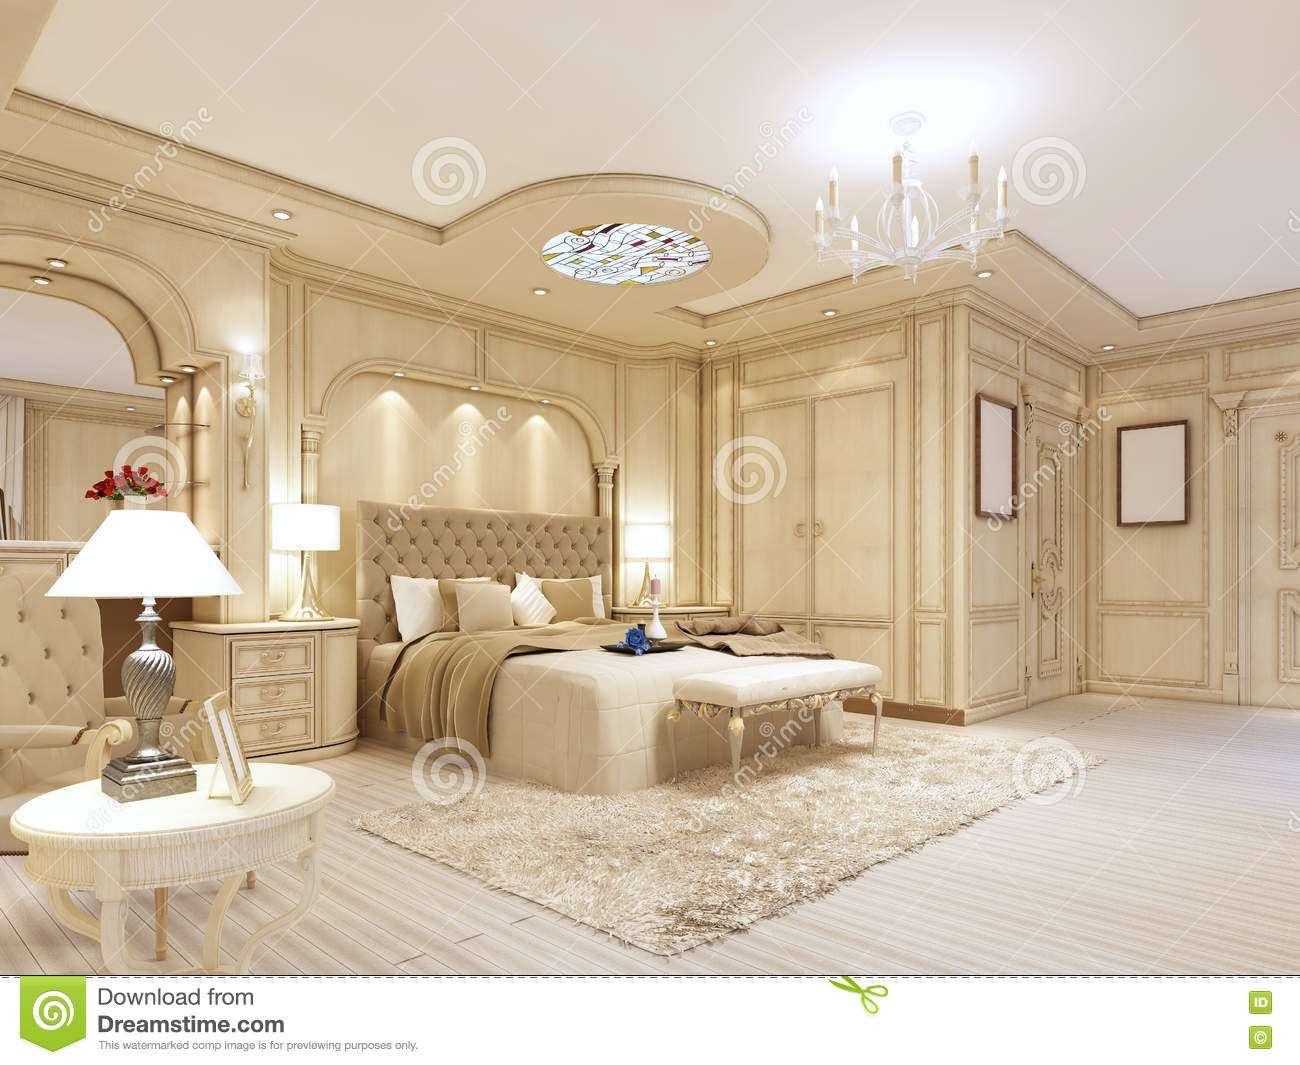 Royalty Free Illustration. Luxurious Bedroom In Pastel Colours In A Neoclassical Style  Stock